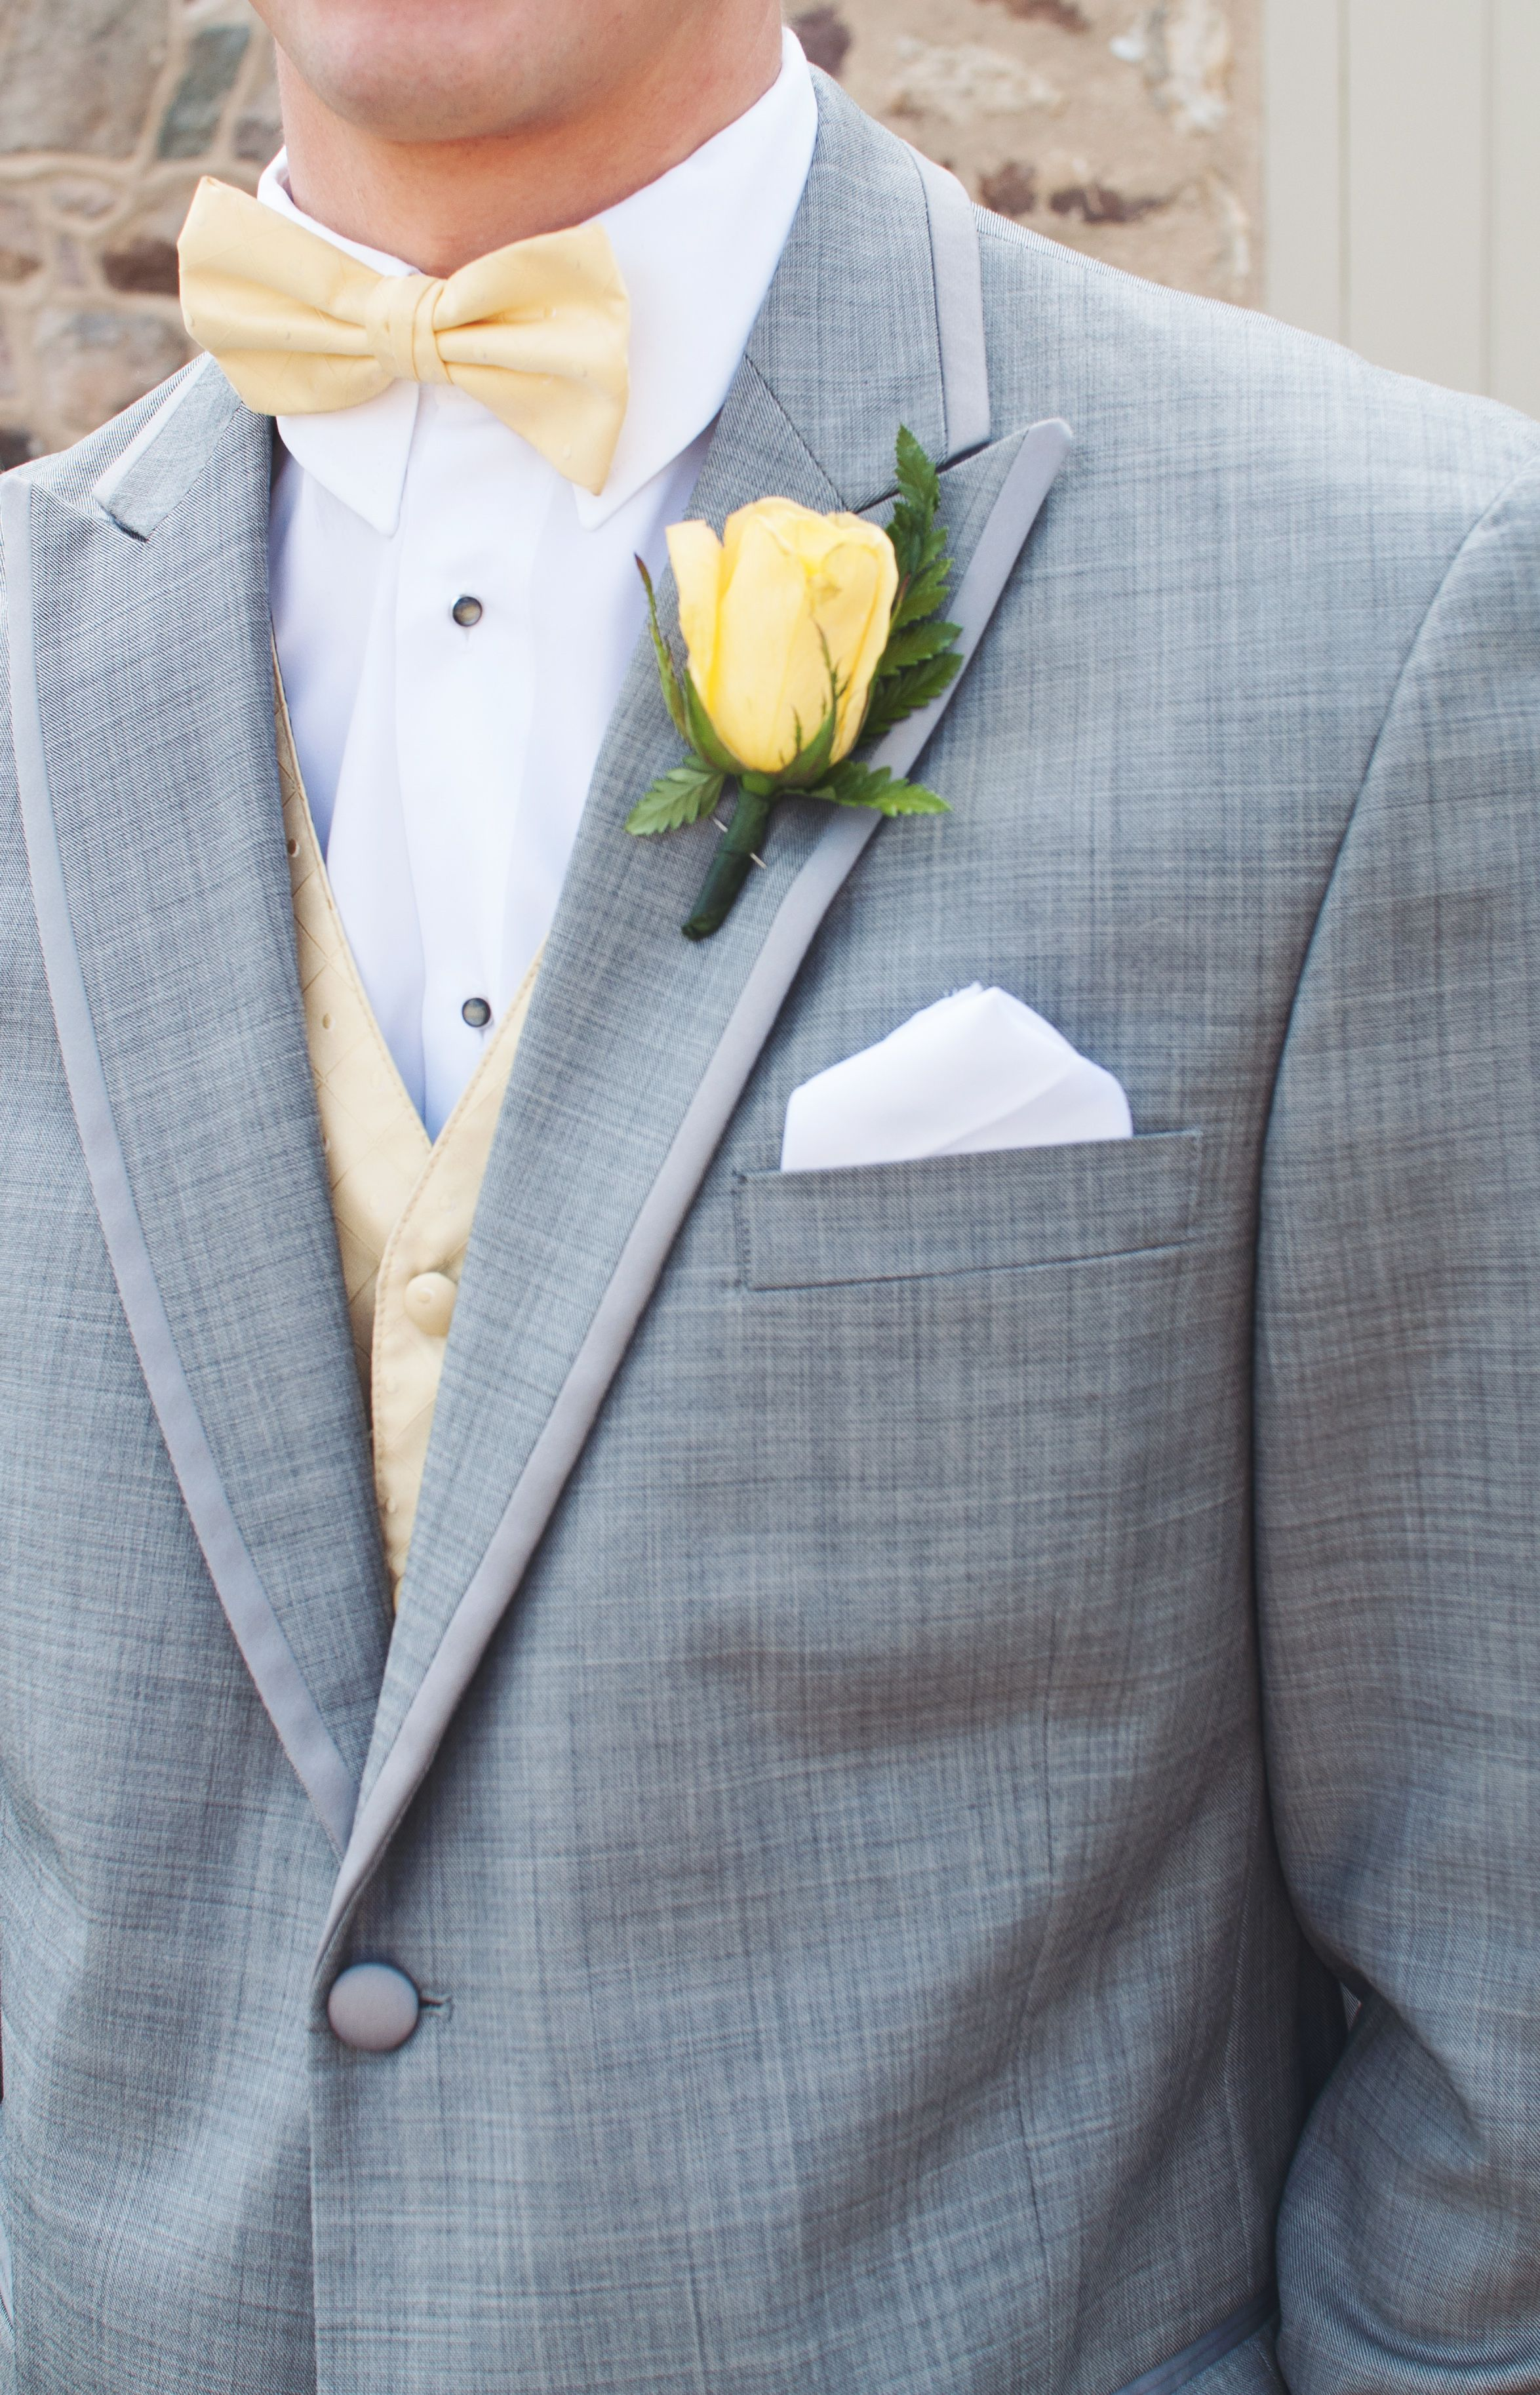 Pin By Merissa Saint Hinkle On Pictures Of Our Wedding Prom Dresses Yellow Yellow Prom Suit Prom Tuxedo [ 3652 x 2349 Pixel ]